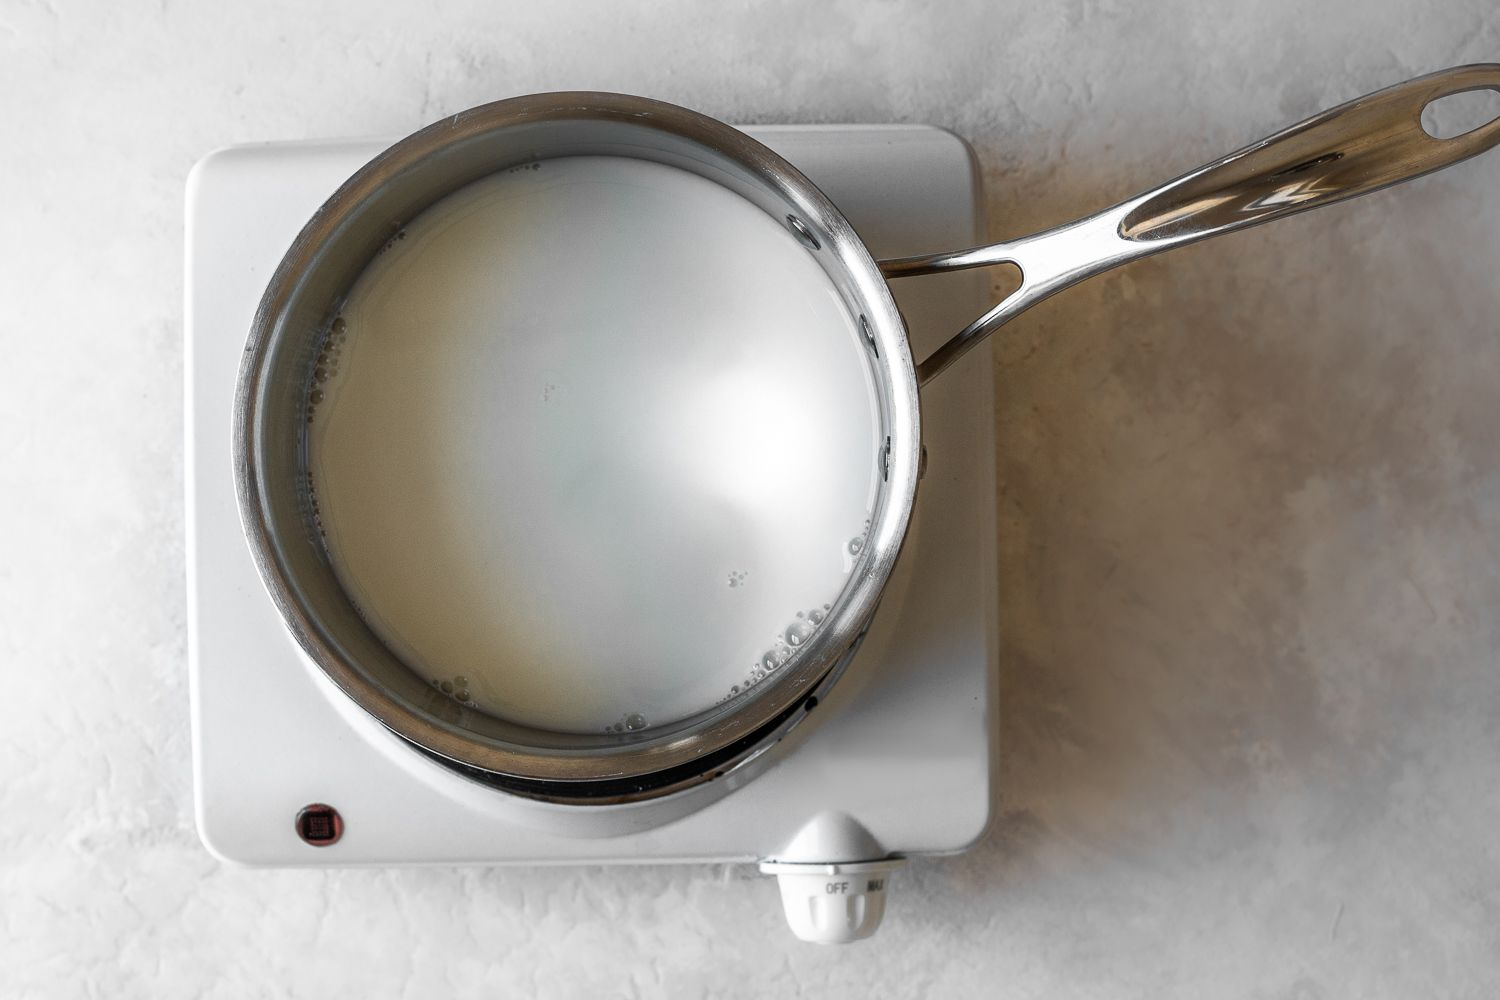 milk and water in a saucepan